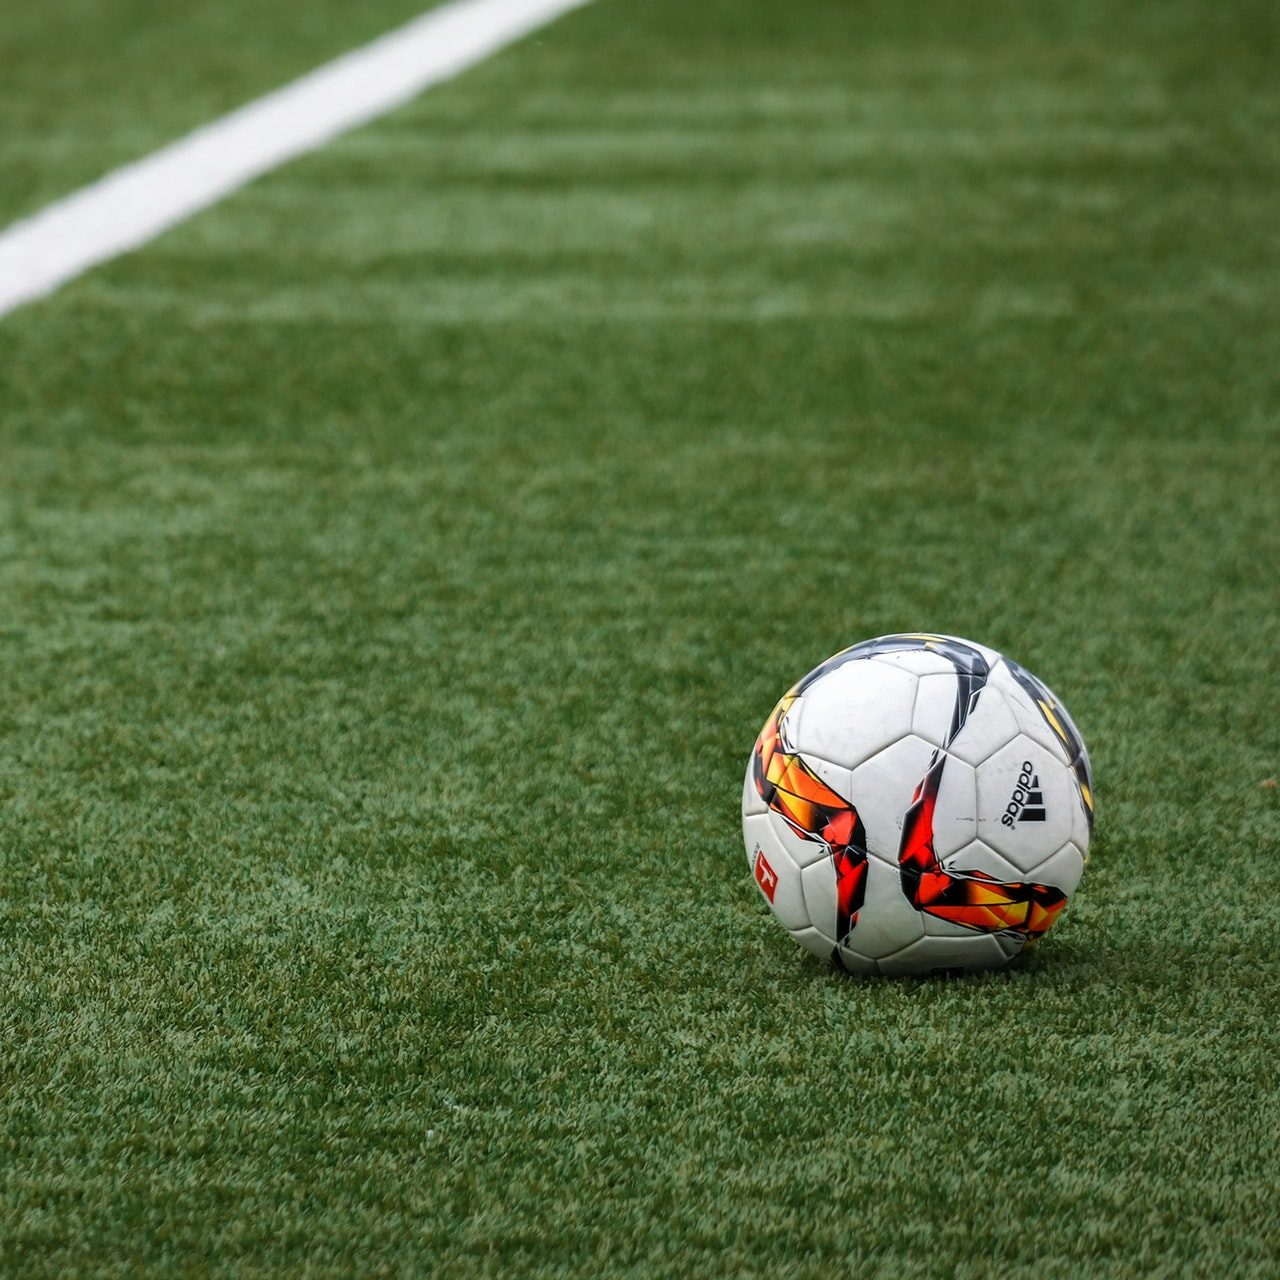 A lone soccer ball sits on a natural turf field